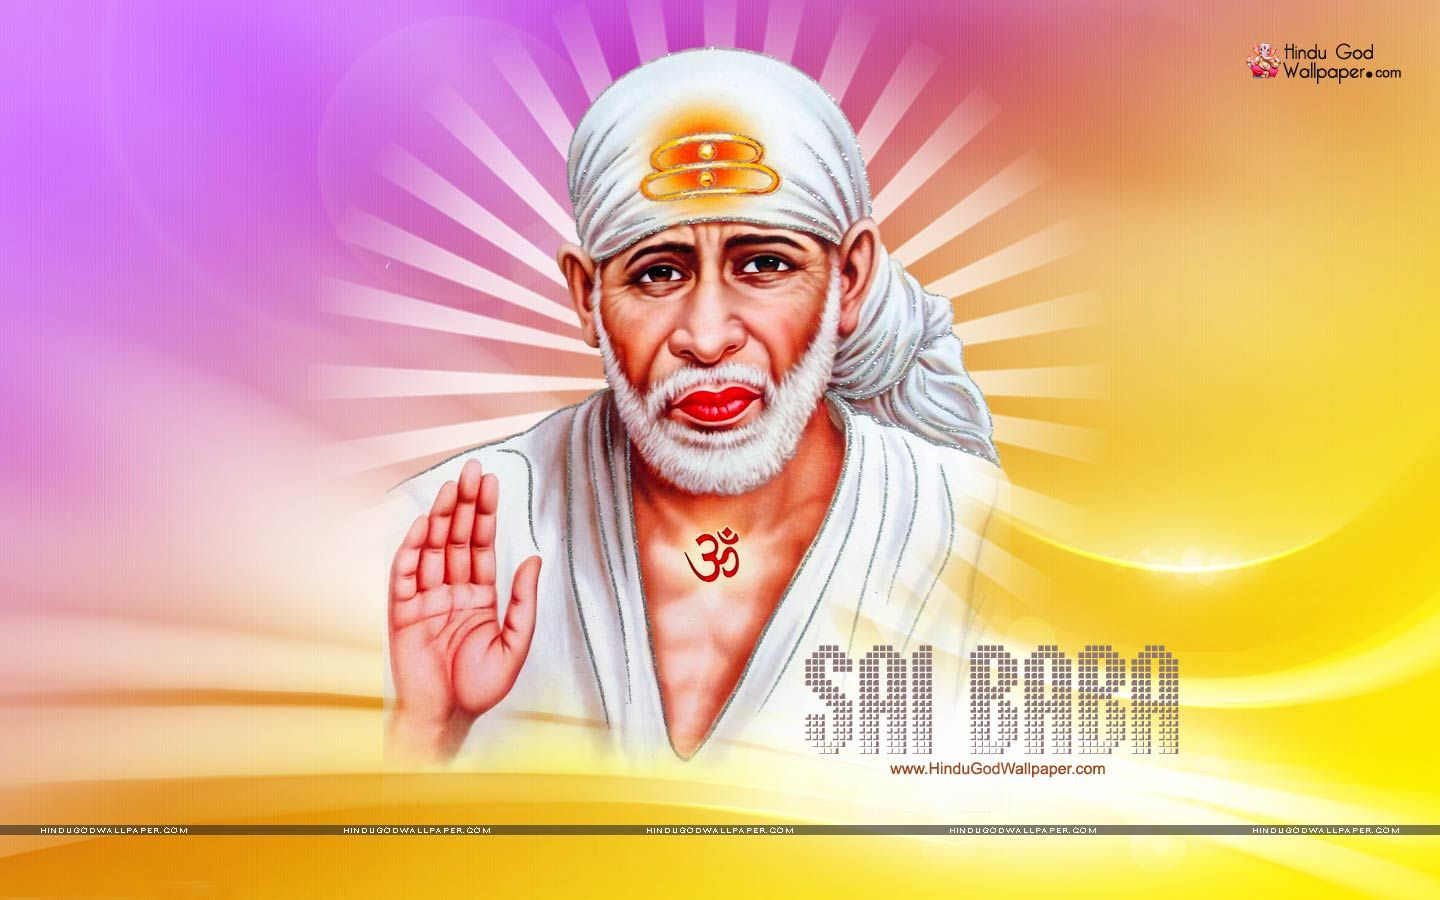 Sai Baba Wallpaper Full Size Sai Baba Wallpapers Sai Baba